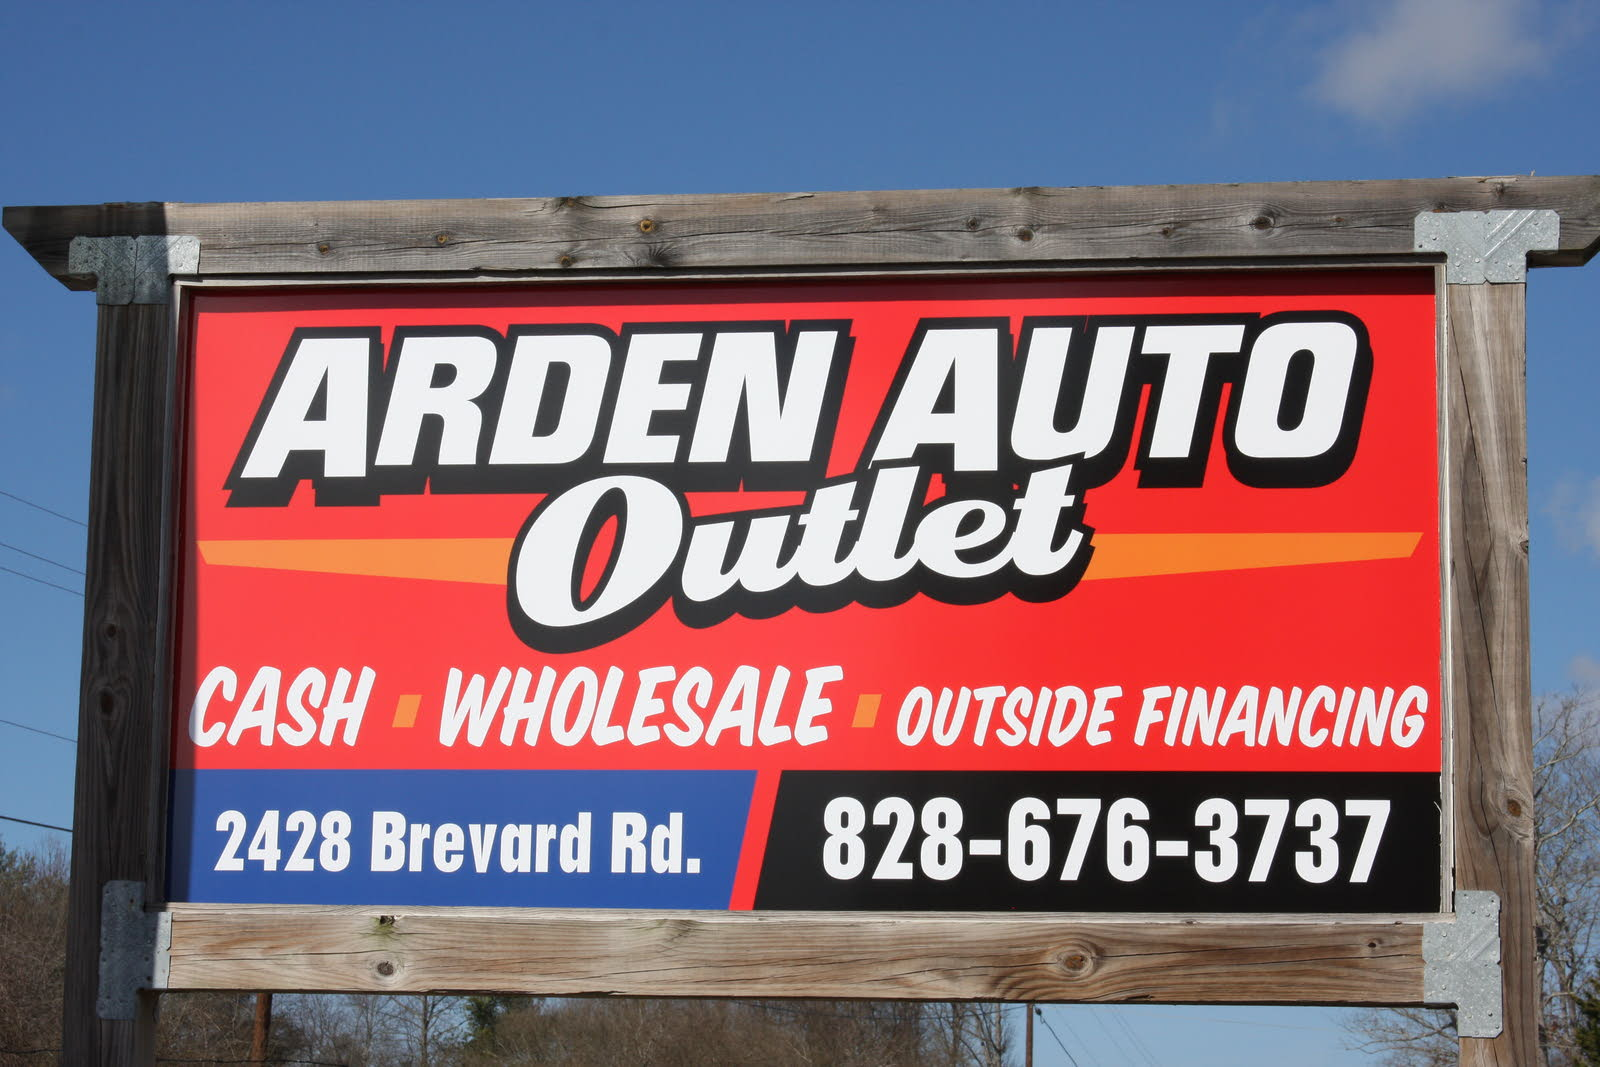 Subaru Greenville Sc >> Arden Auto Outlet - Arden, NC: Read Consumer reviews, Browse Used and New Cars for Sale